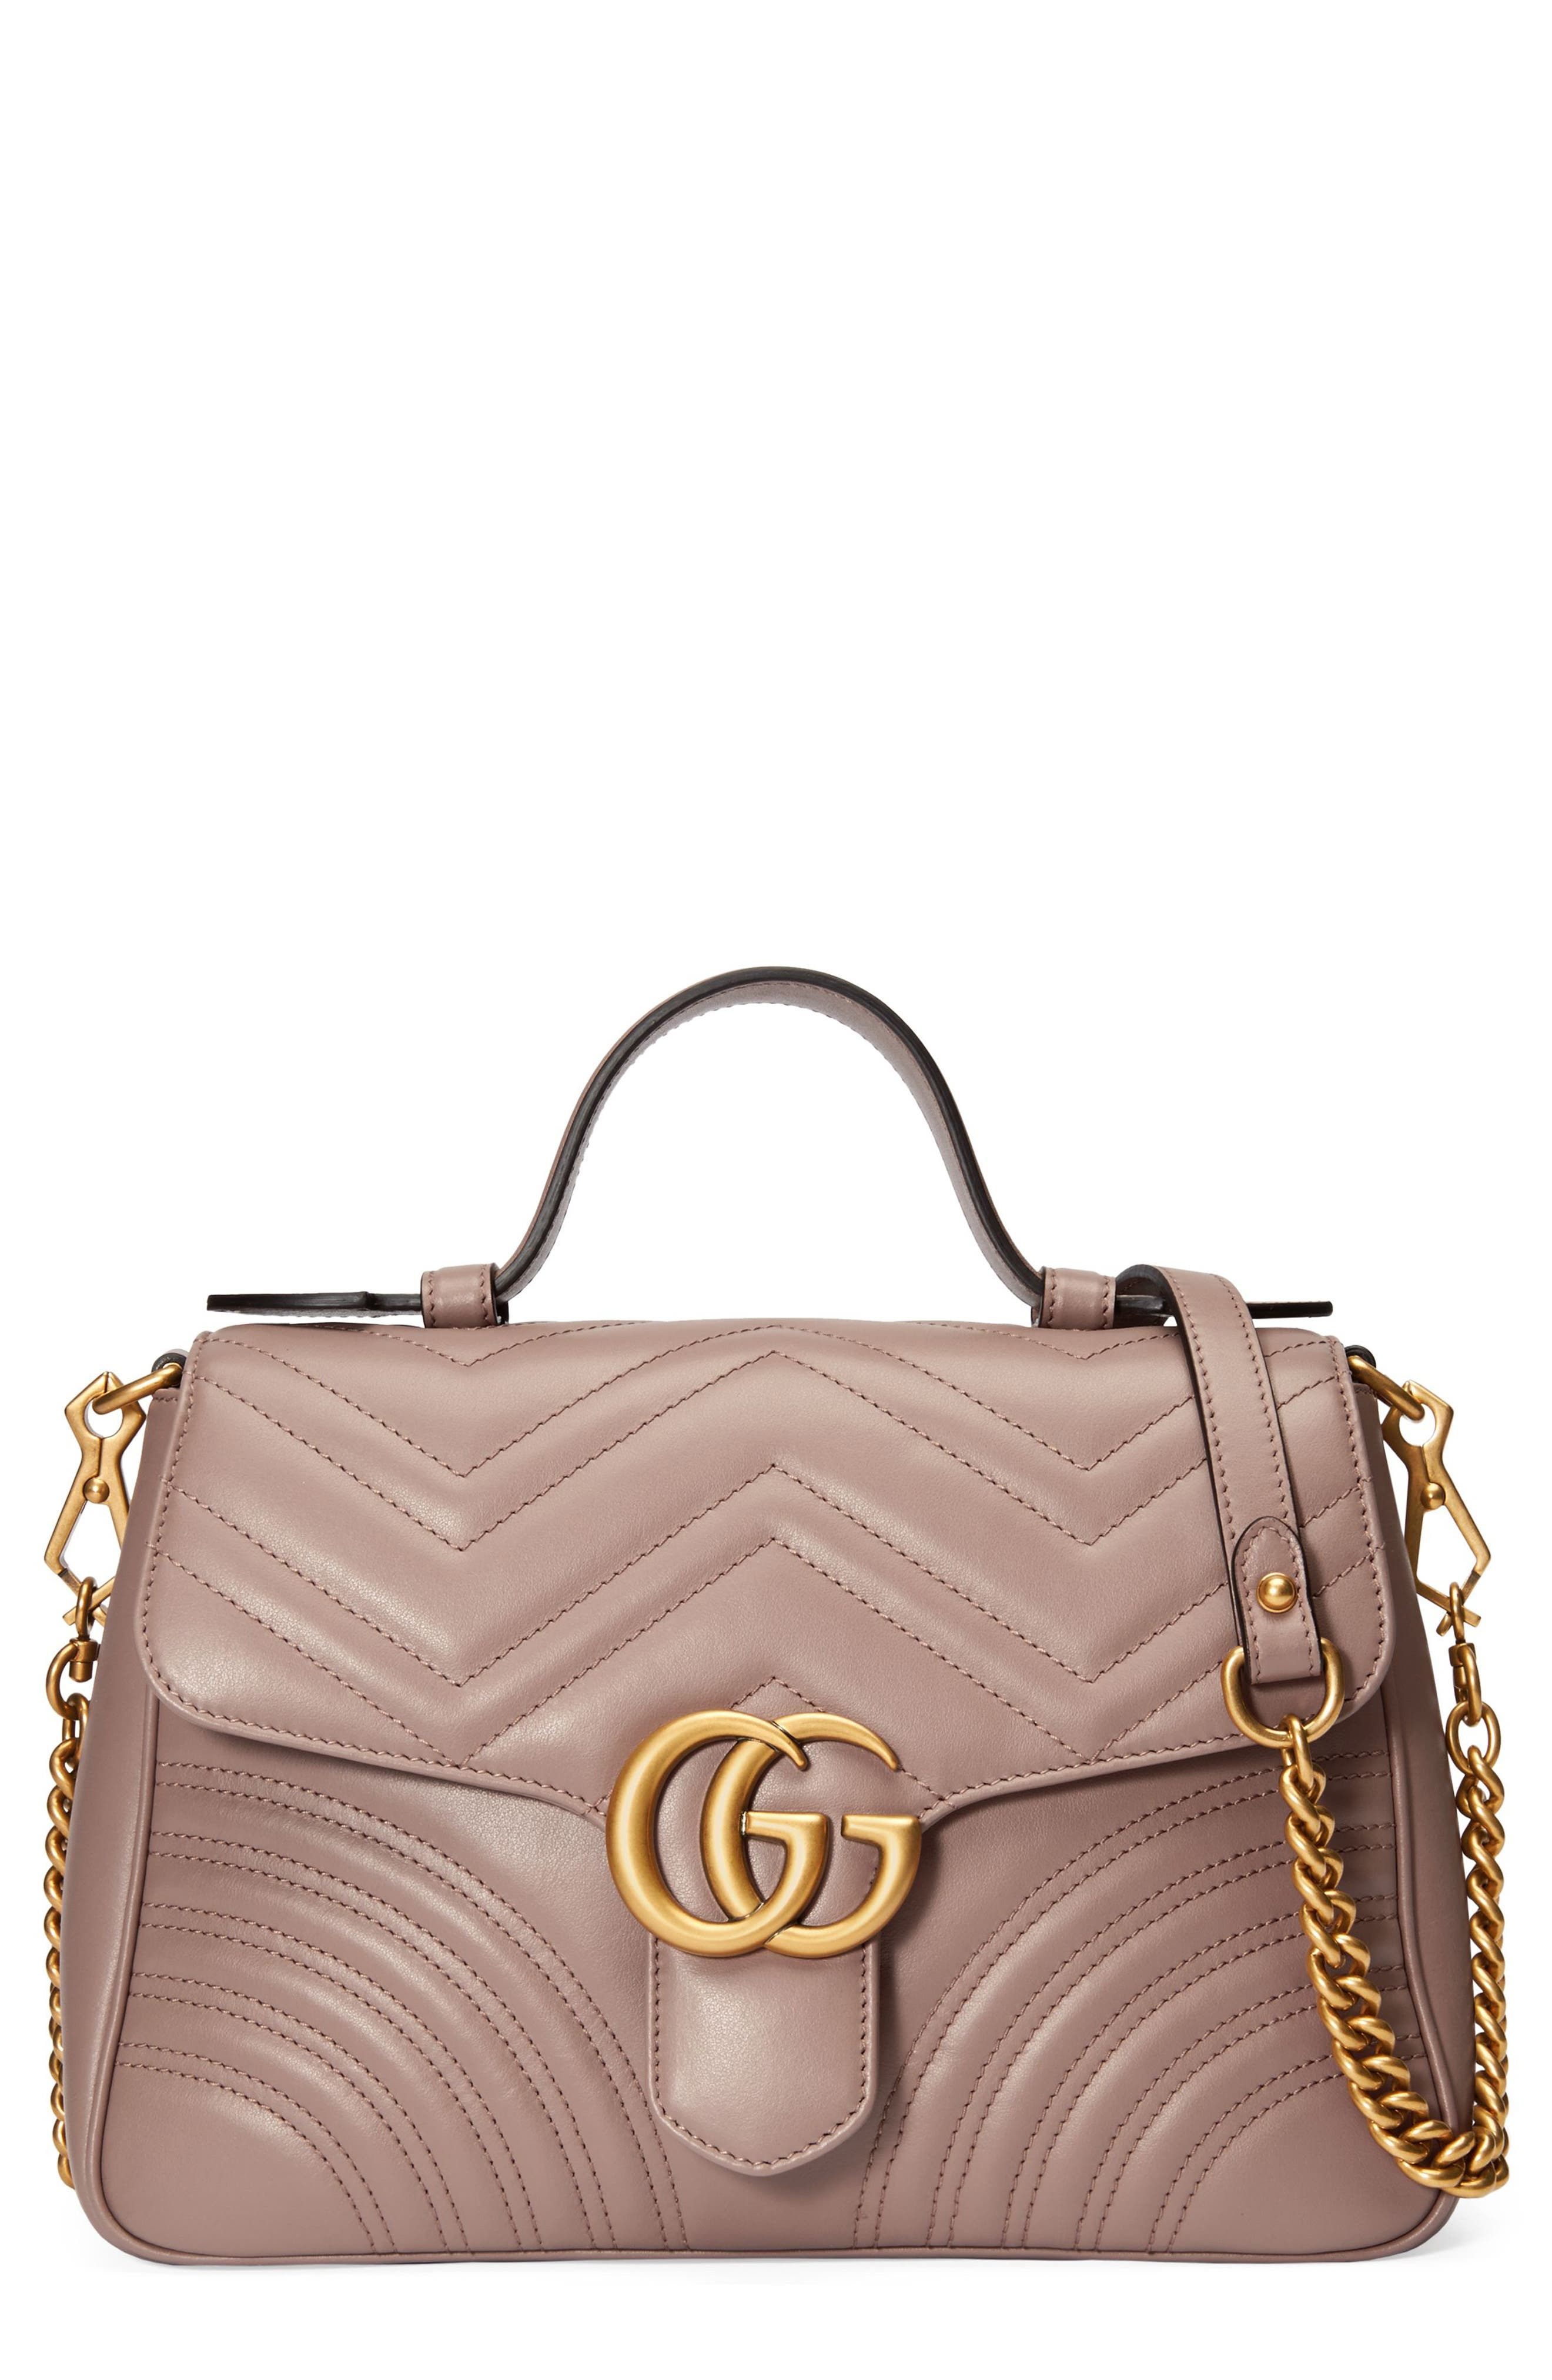 Gucci Gg Marmont Small Chevron Quilted Top Handle Bag With